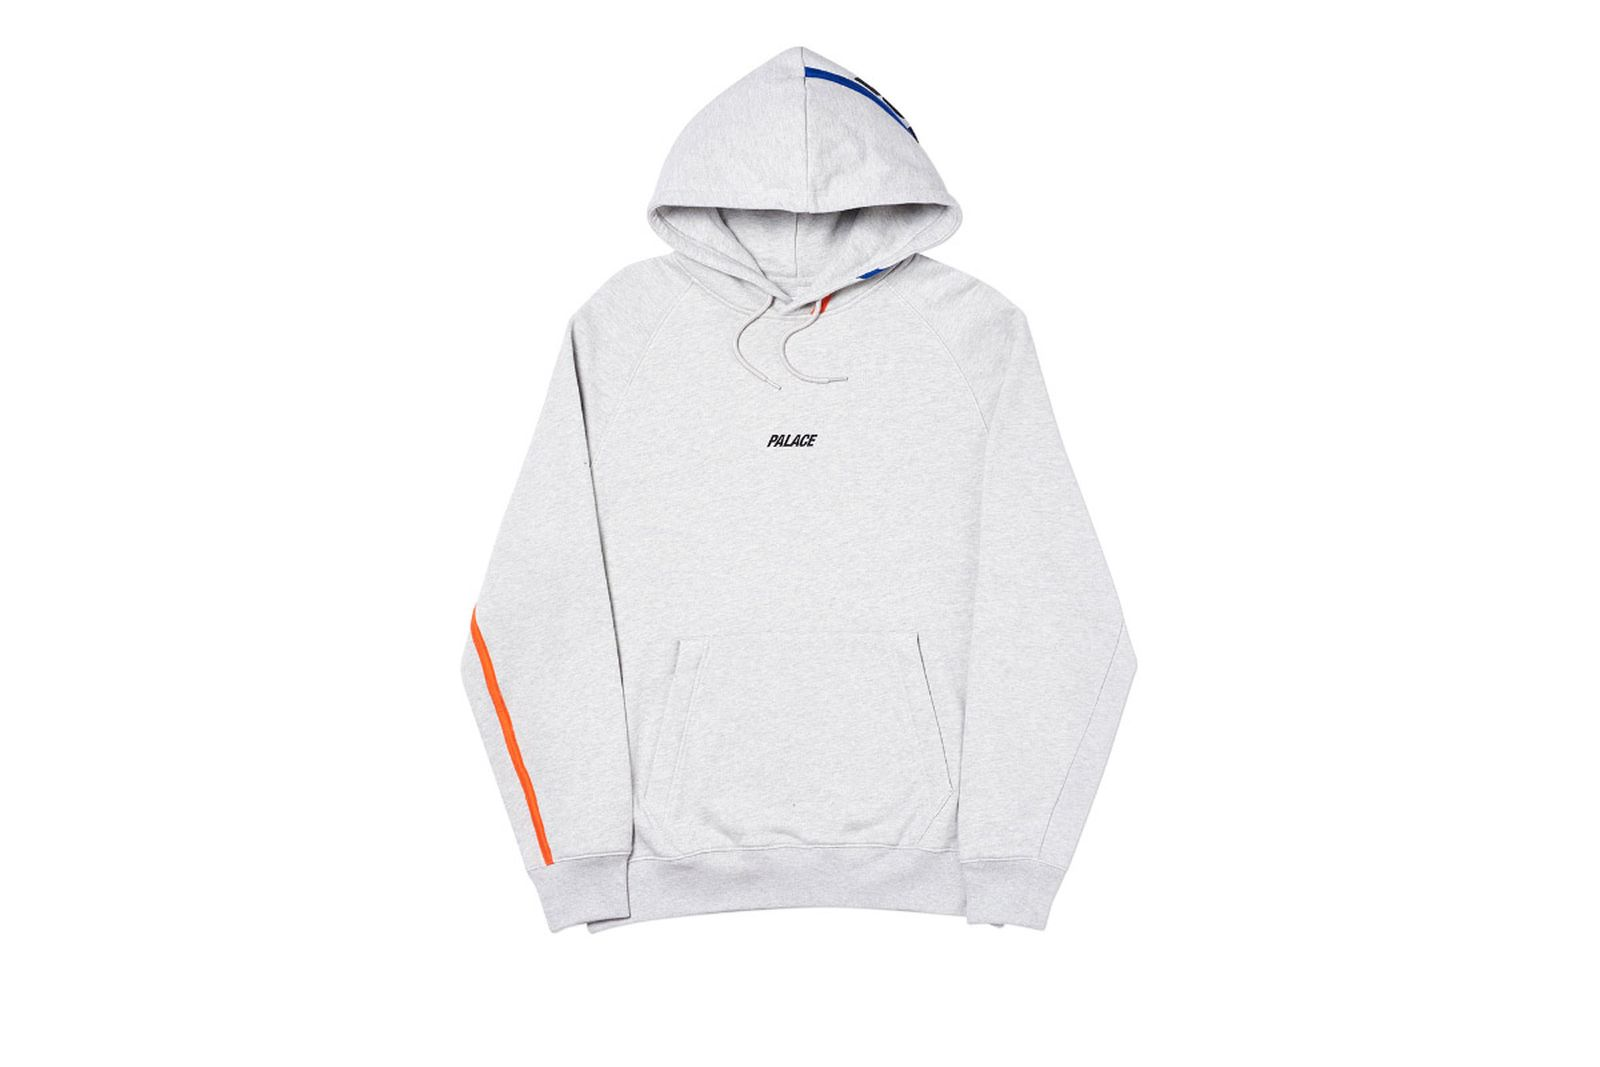 Palace 2019 Autumn Hood Dome Grey Marl Front